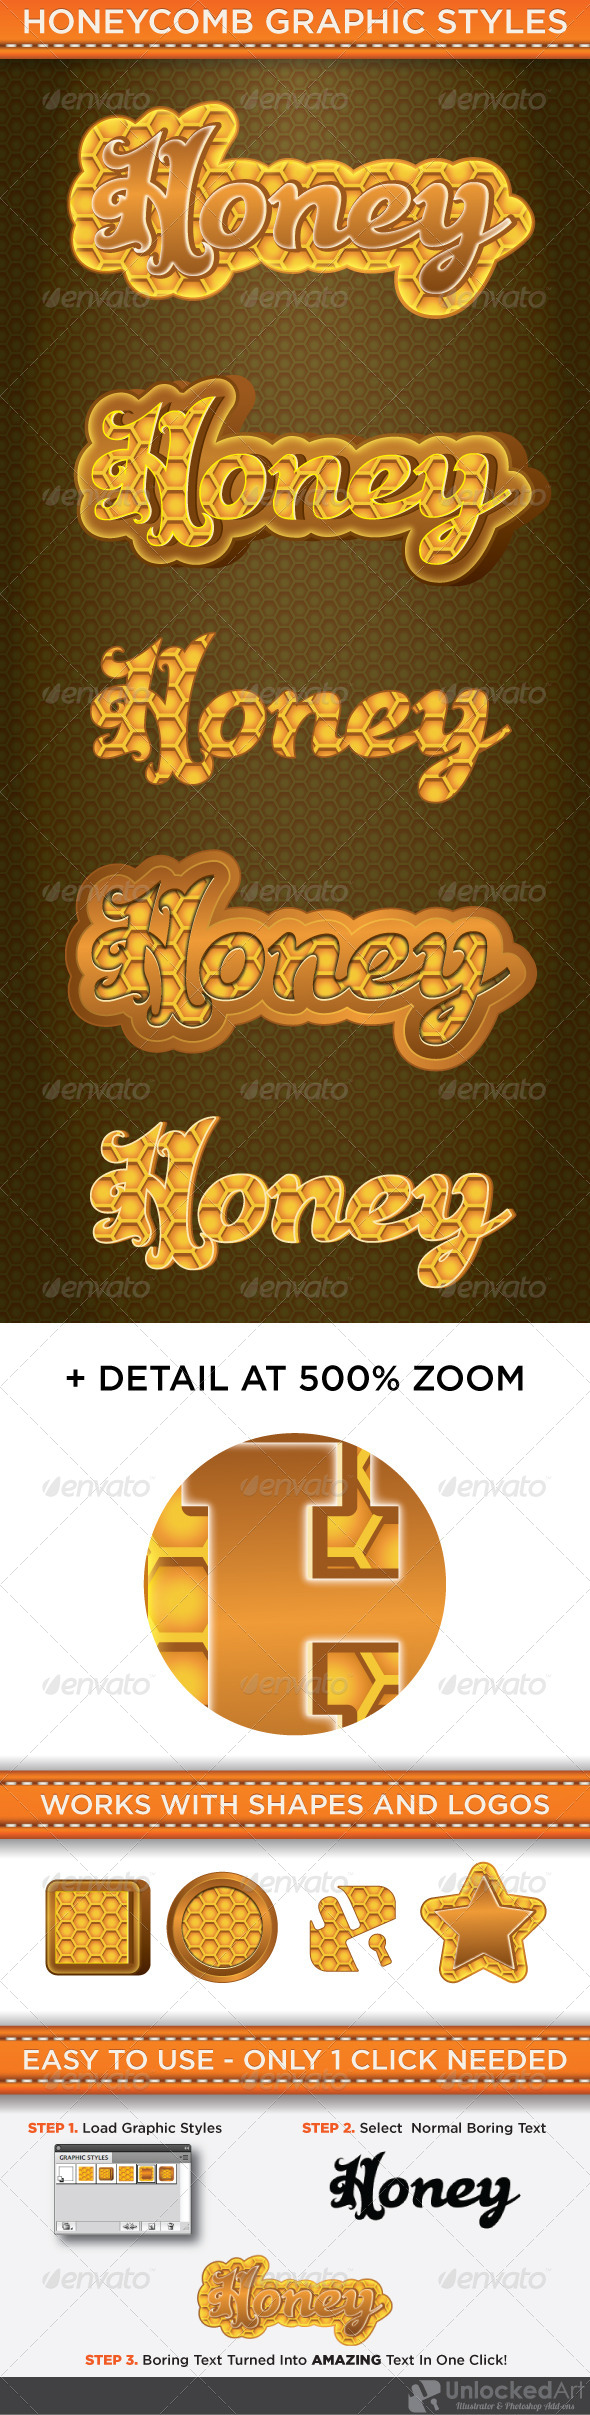 HoneyComb Graphic Styles - Styles Illustrator